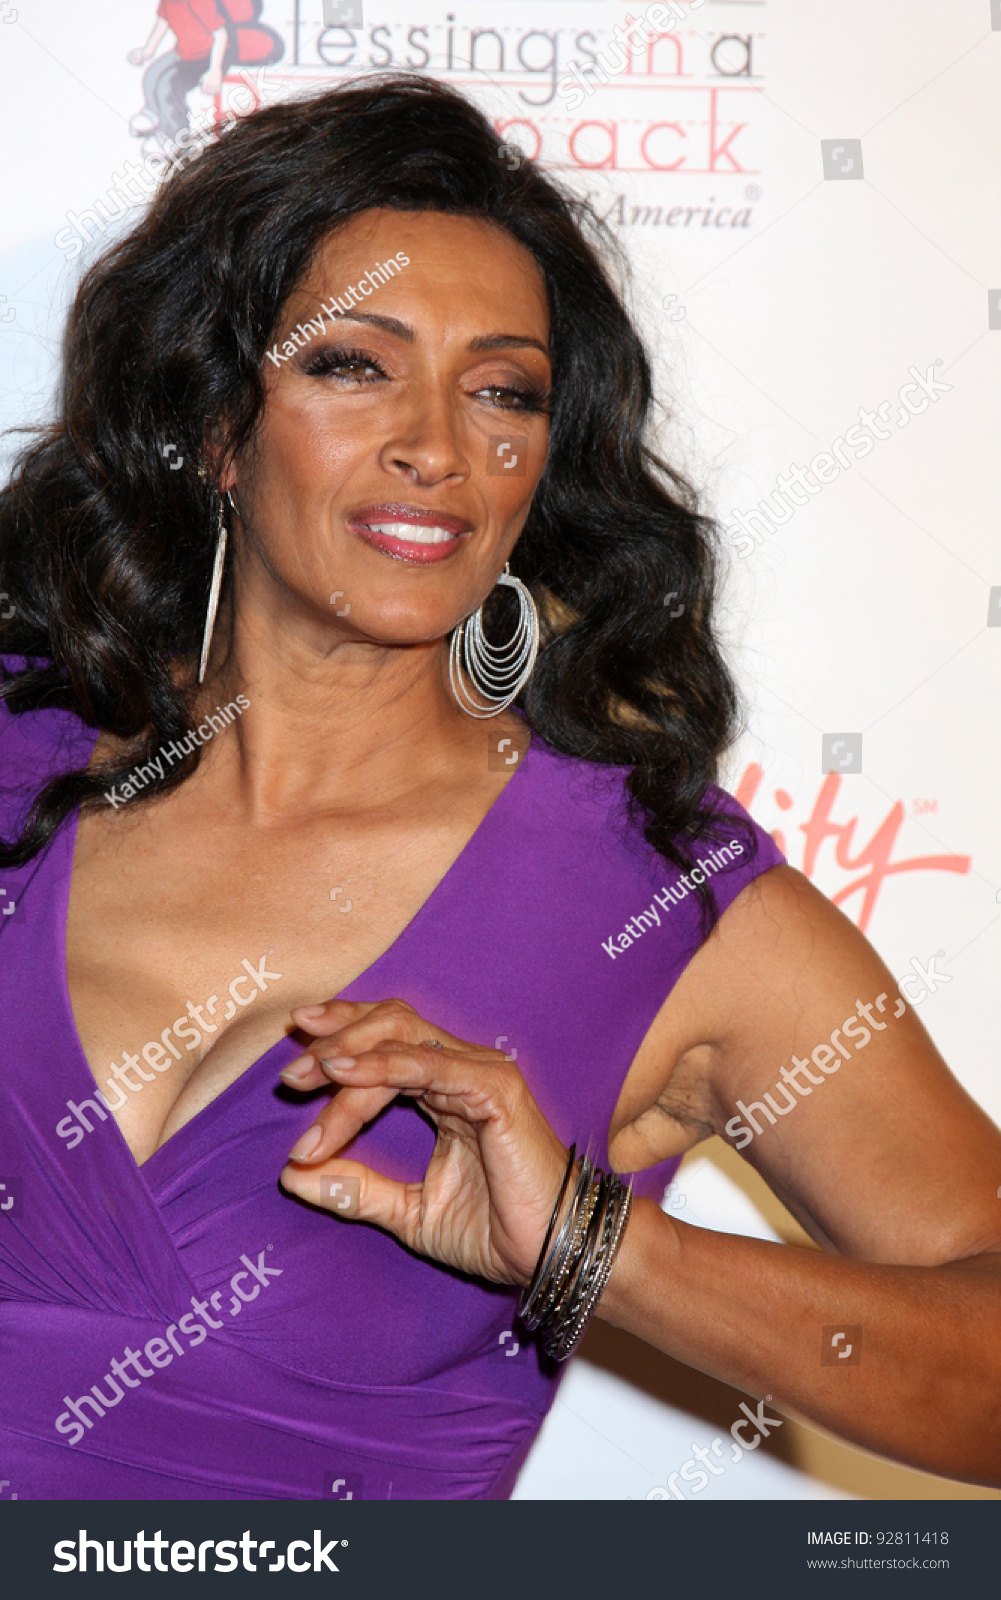 Discussion on this topic: Bess Flowers, kathleen-bradley/